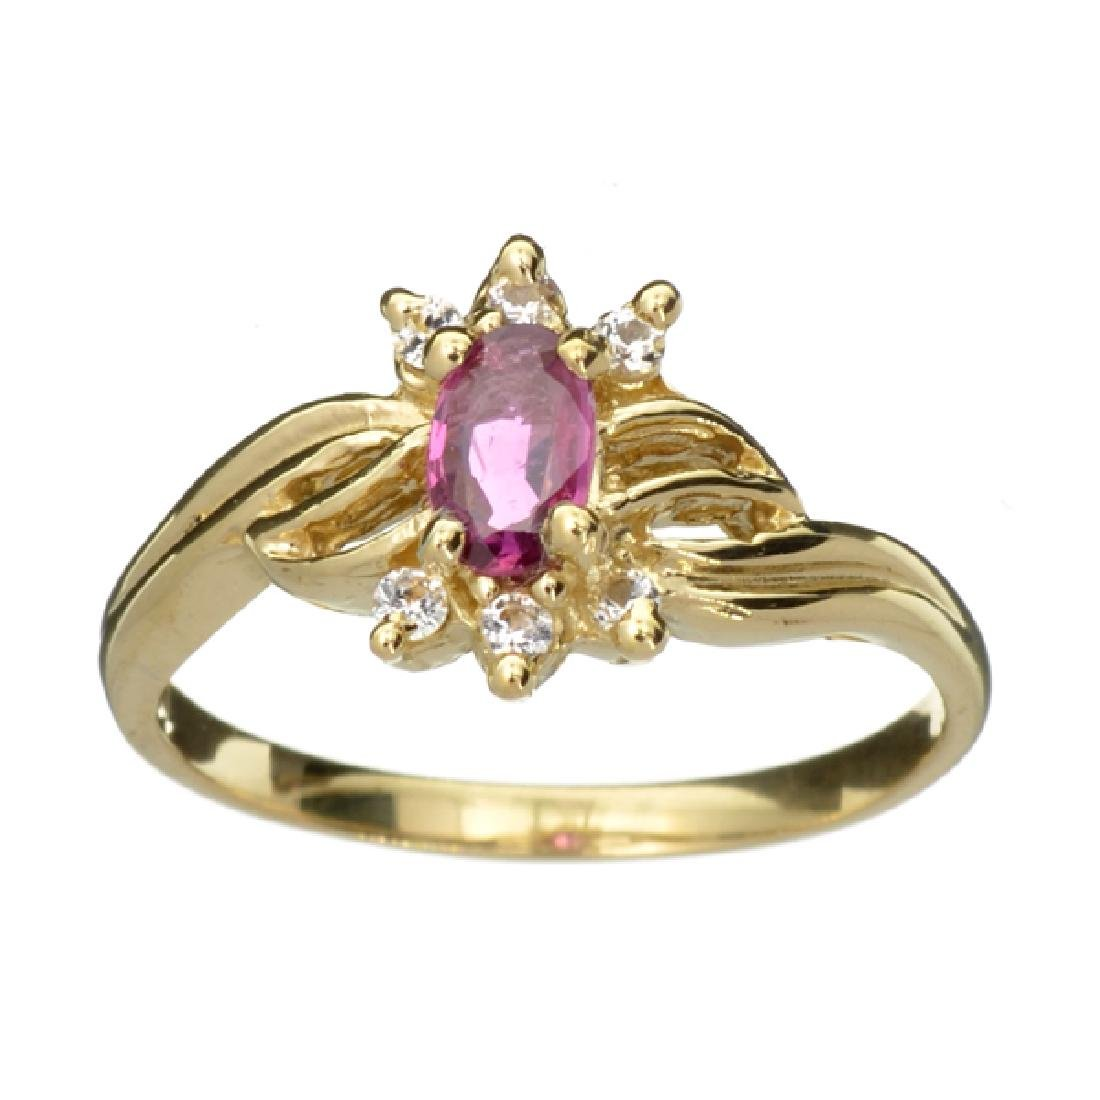 APP: 1k 14 kt. Gold, 0.31CT Oval Cut Ruby Ring